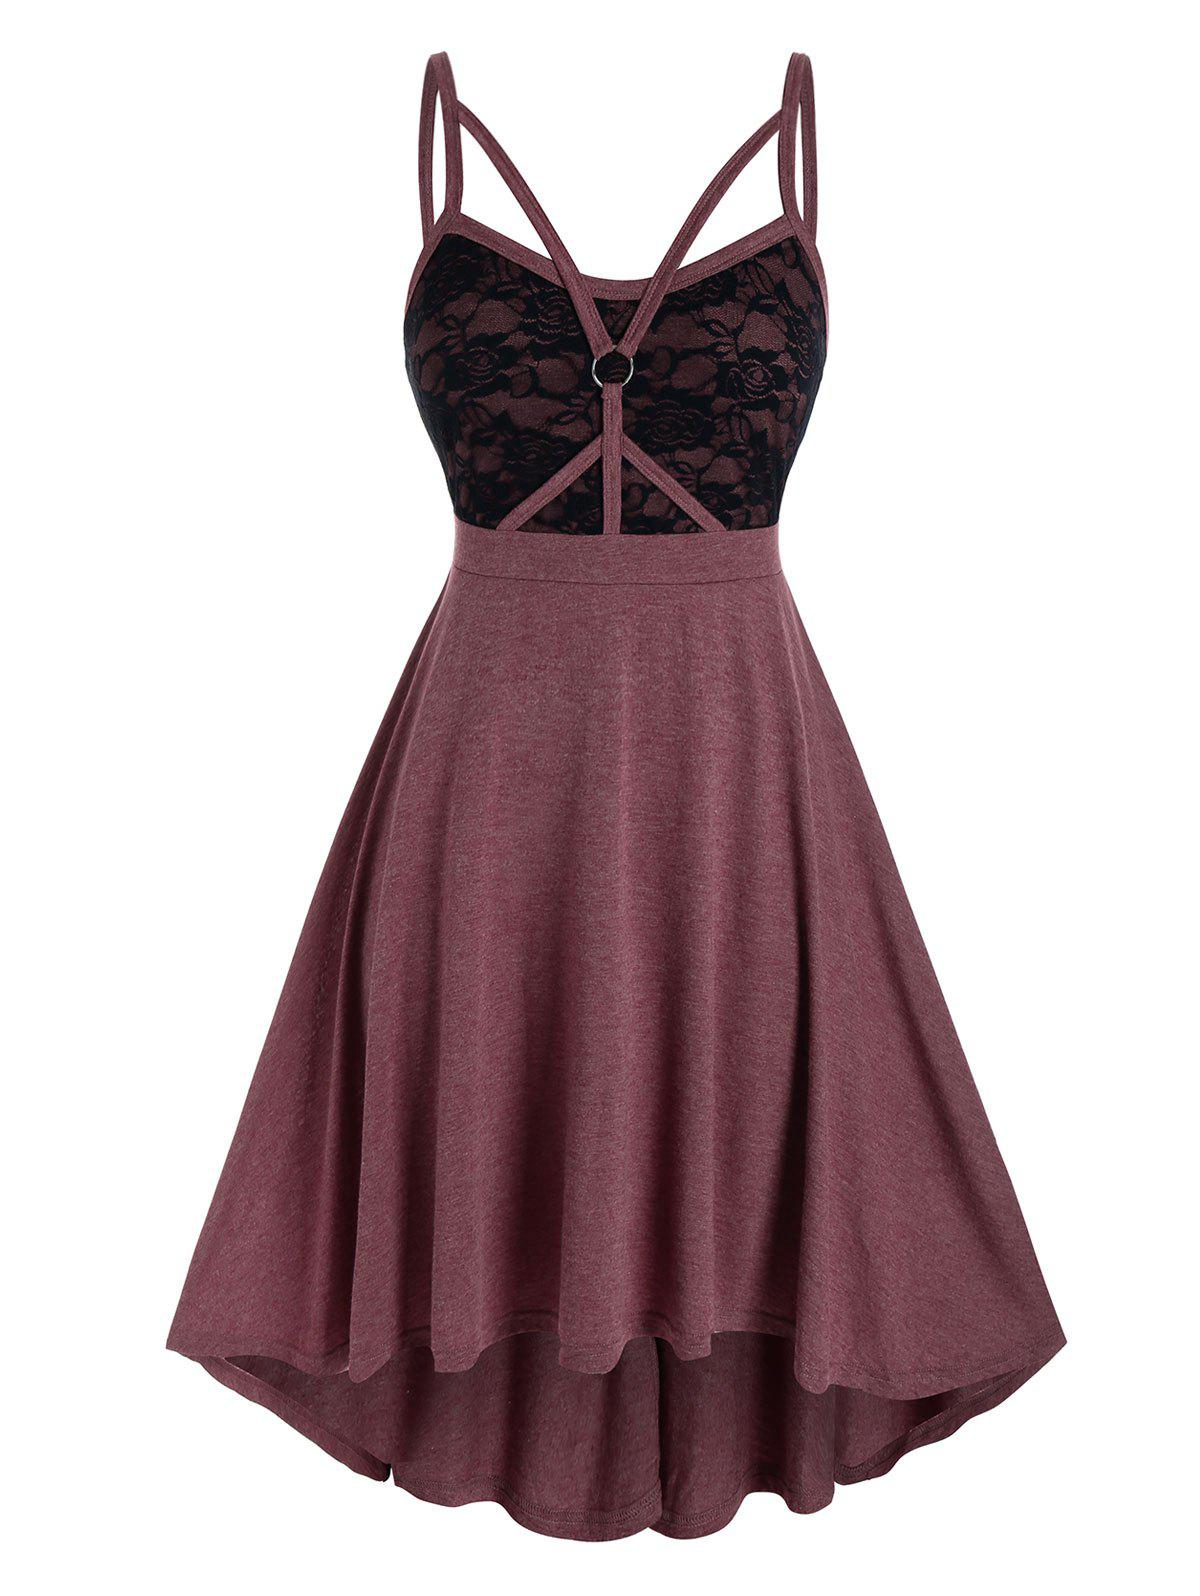 Plus Size Lace Insert Caged Strap Ring Cami Dress - RED WINE 4X